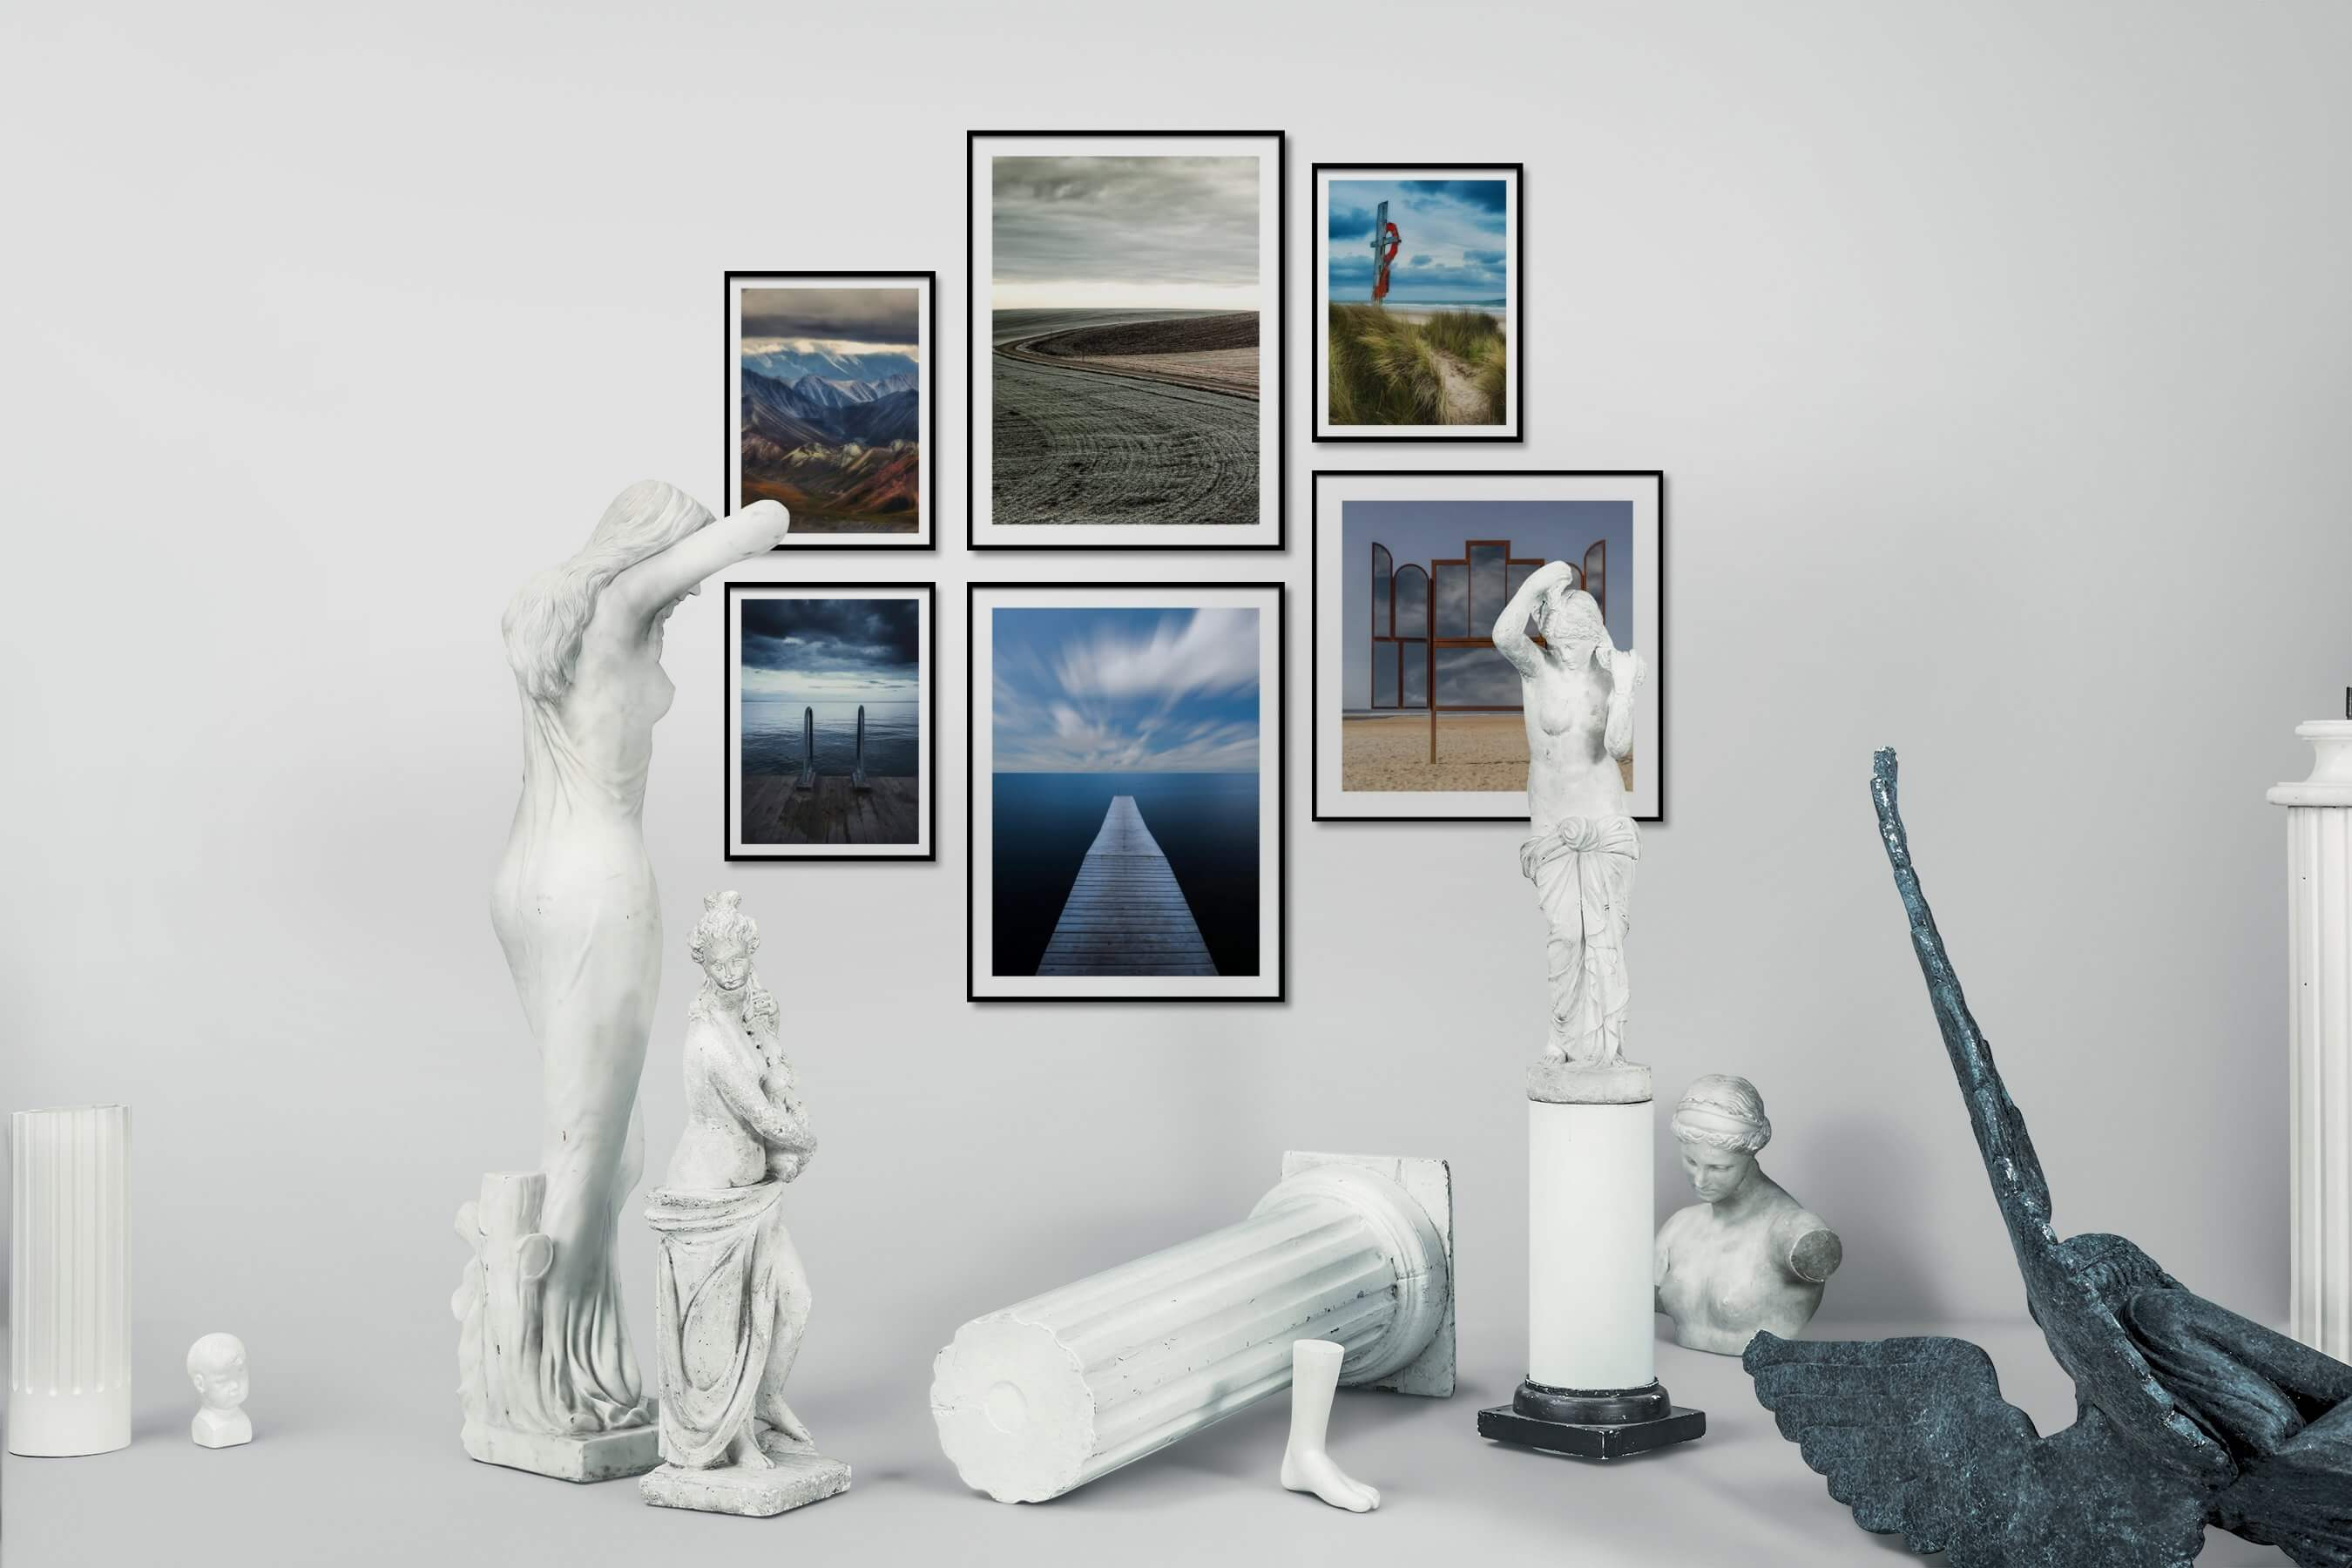 Gallery wall idea with six framed pictures arranged on a wall depicting Nature, Country Life, Mindfulness, and Beach & Water